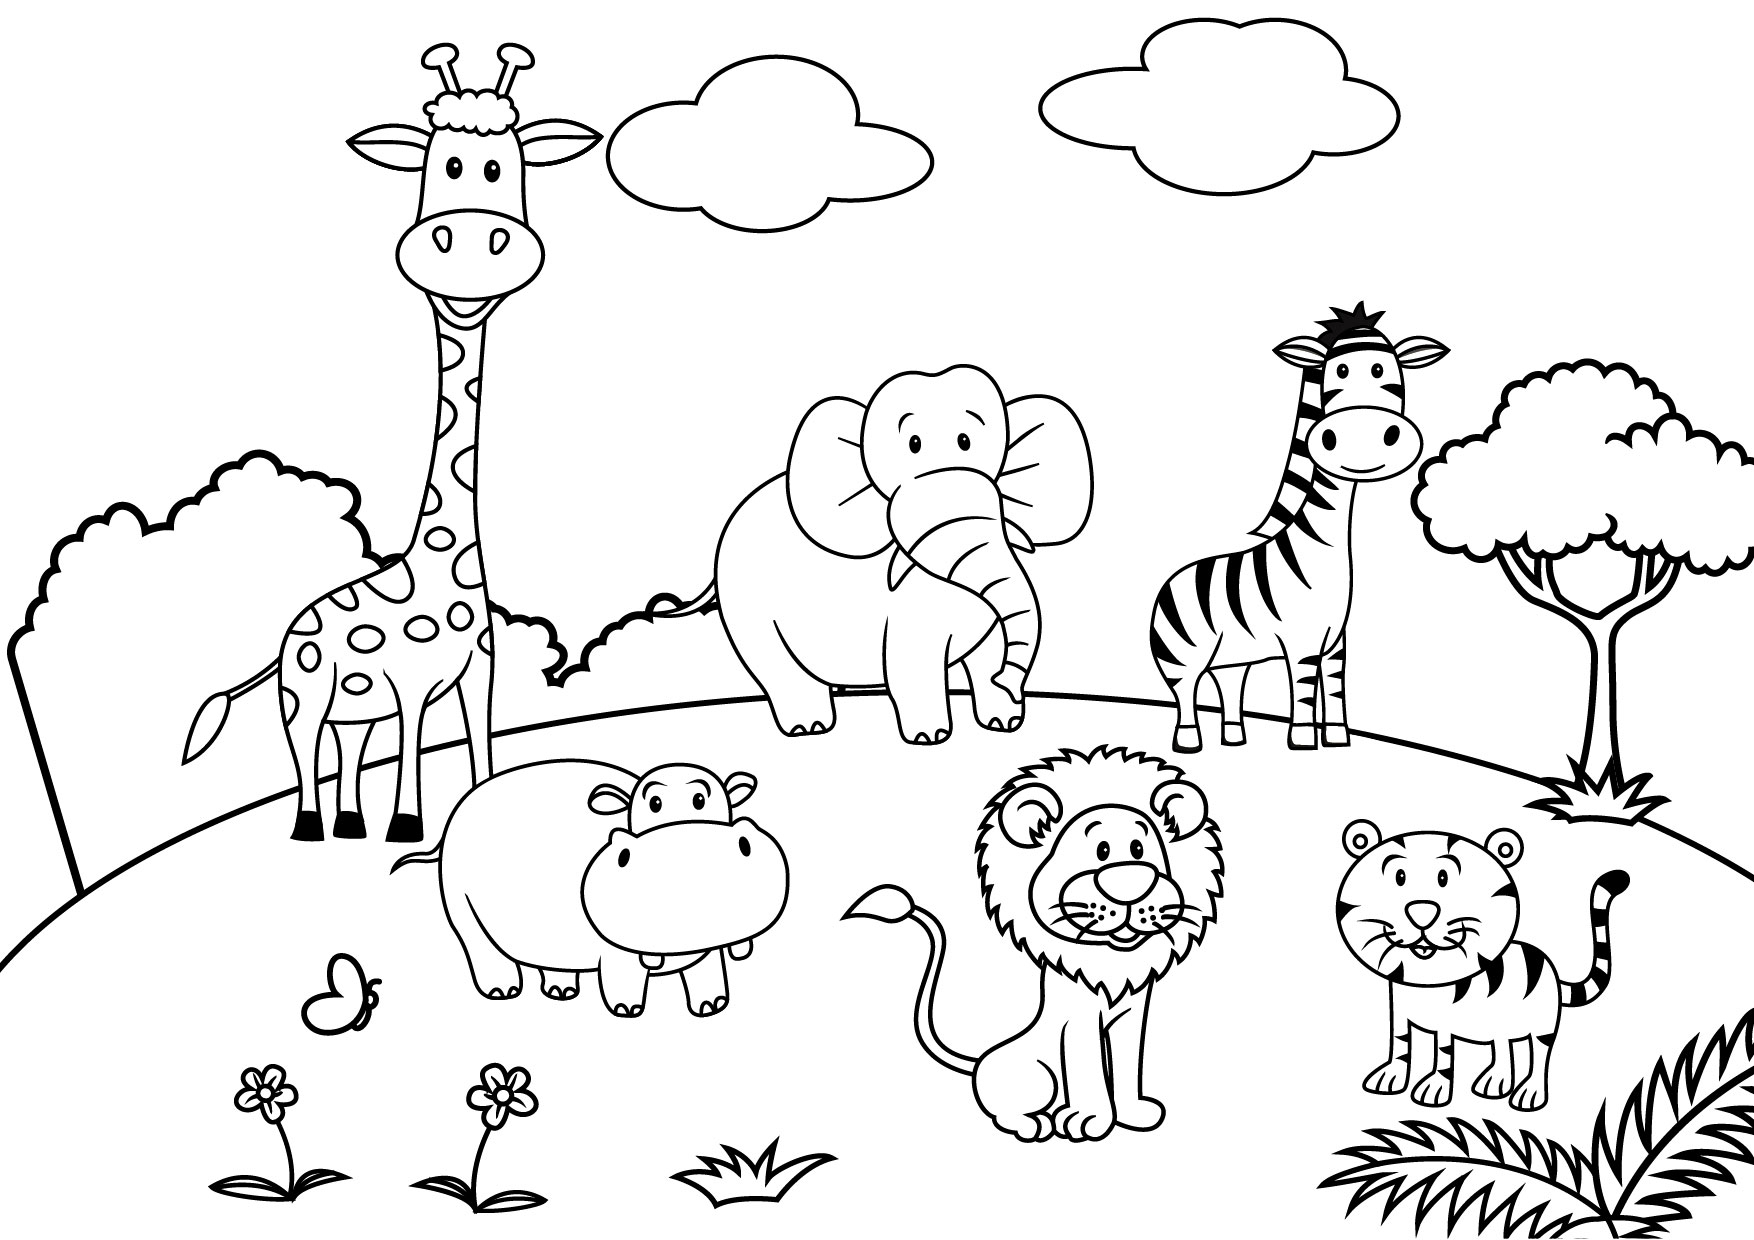 coloring scenery for kids beautiful scenery colouring pages in the playroom kids scenery for coloring